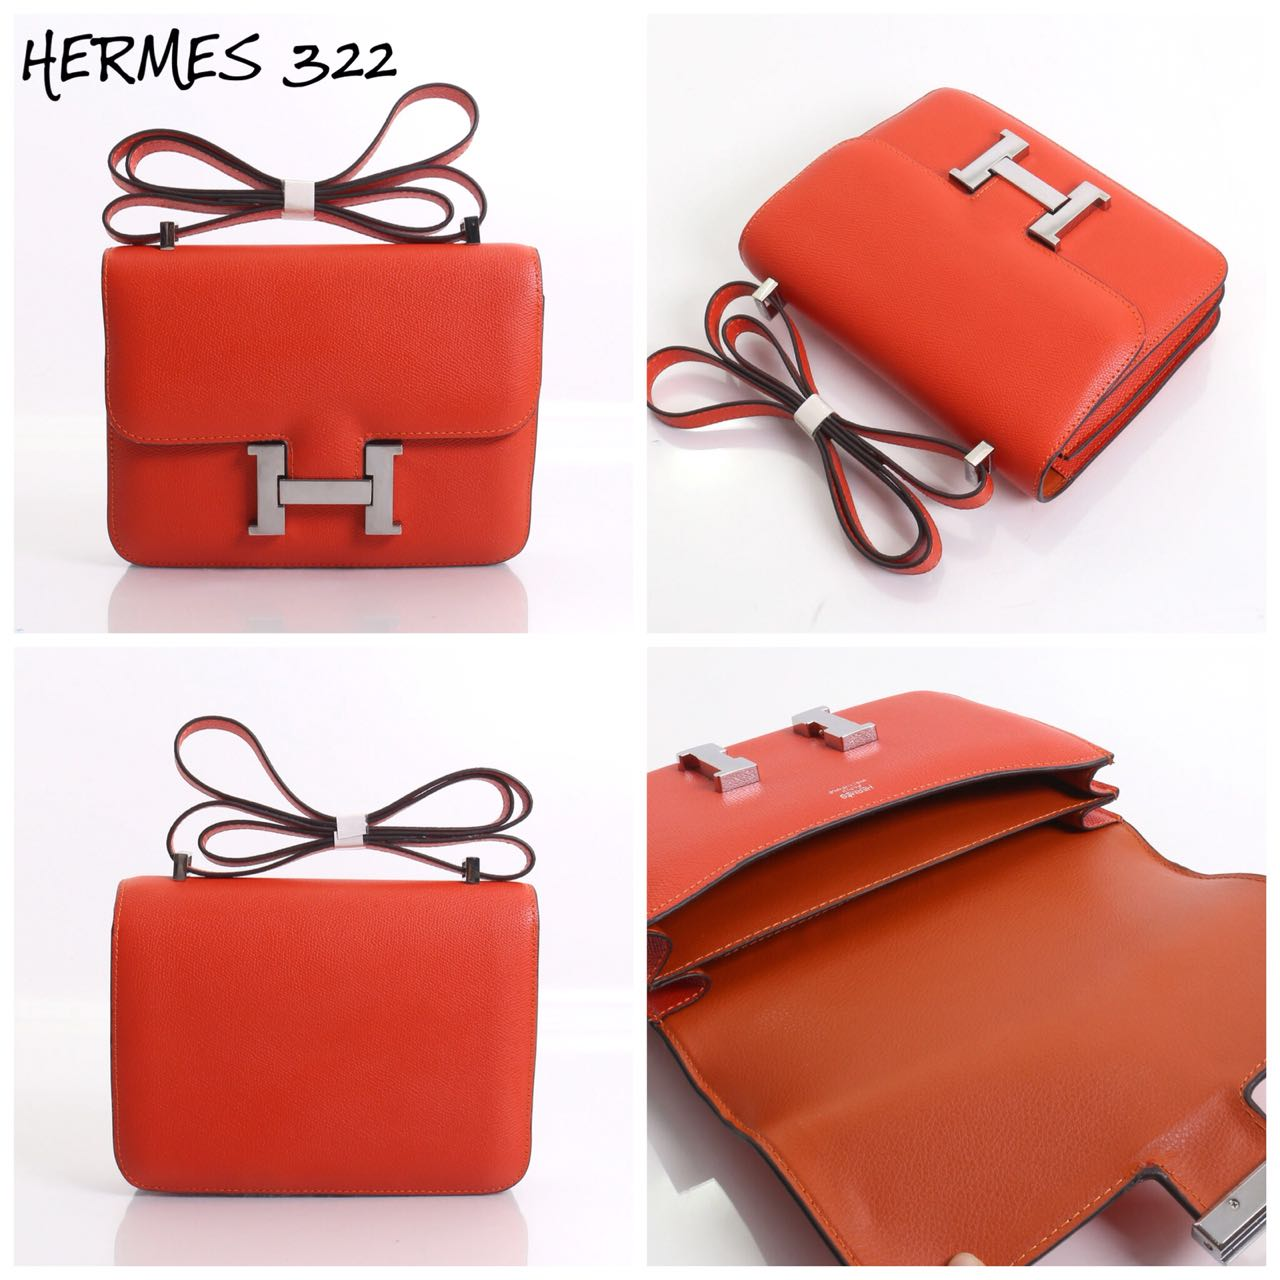 Clutch Hermes Constance Small SHW MERAH Semprem Box Terlaris 322. Clutch  Hermes Online · Model Tas Batam Model Tas Batam Model Tas Batam ... 9eea3e9742